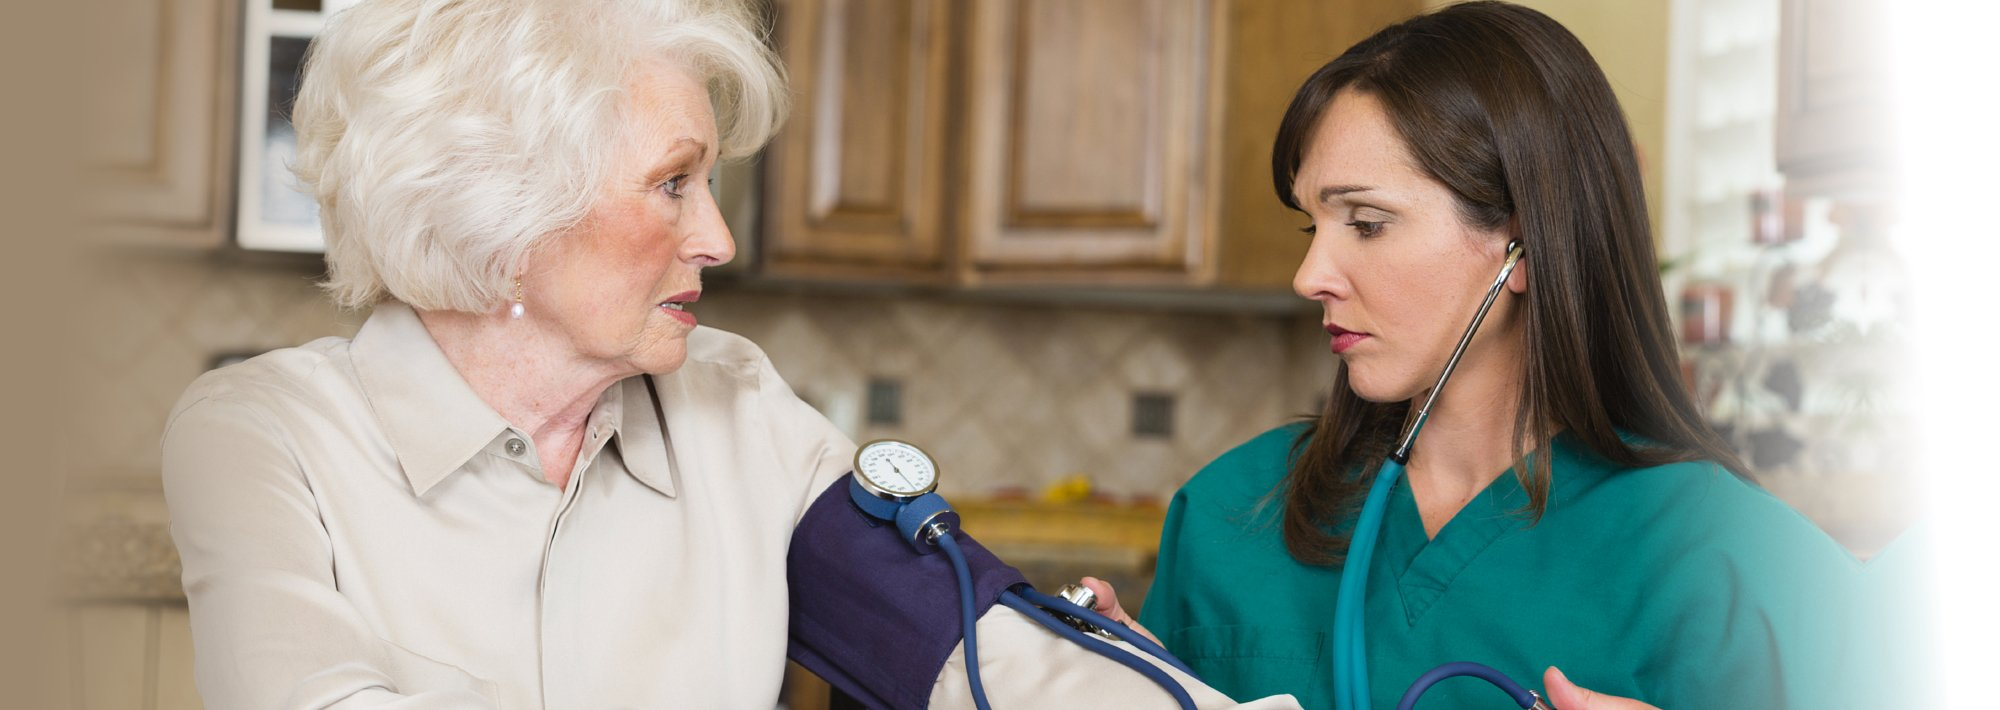 Nurse looking worried while checking the blood pressure of a senior